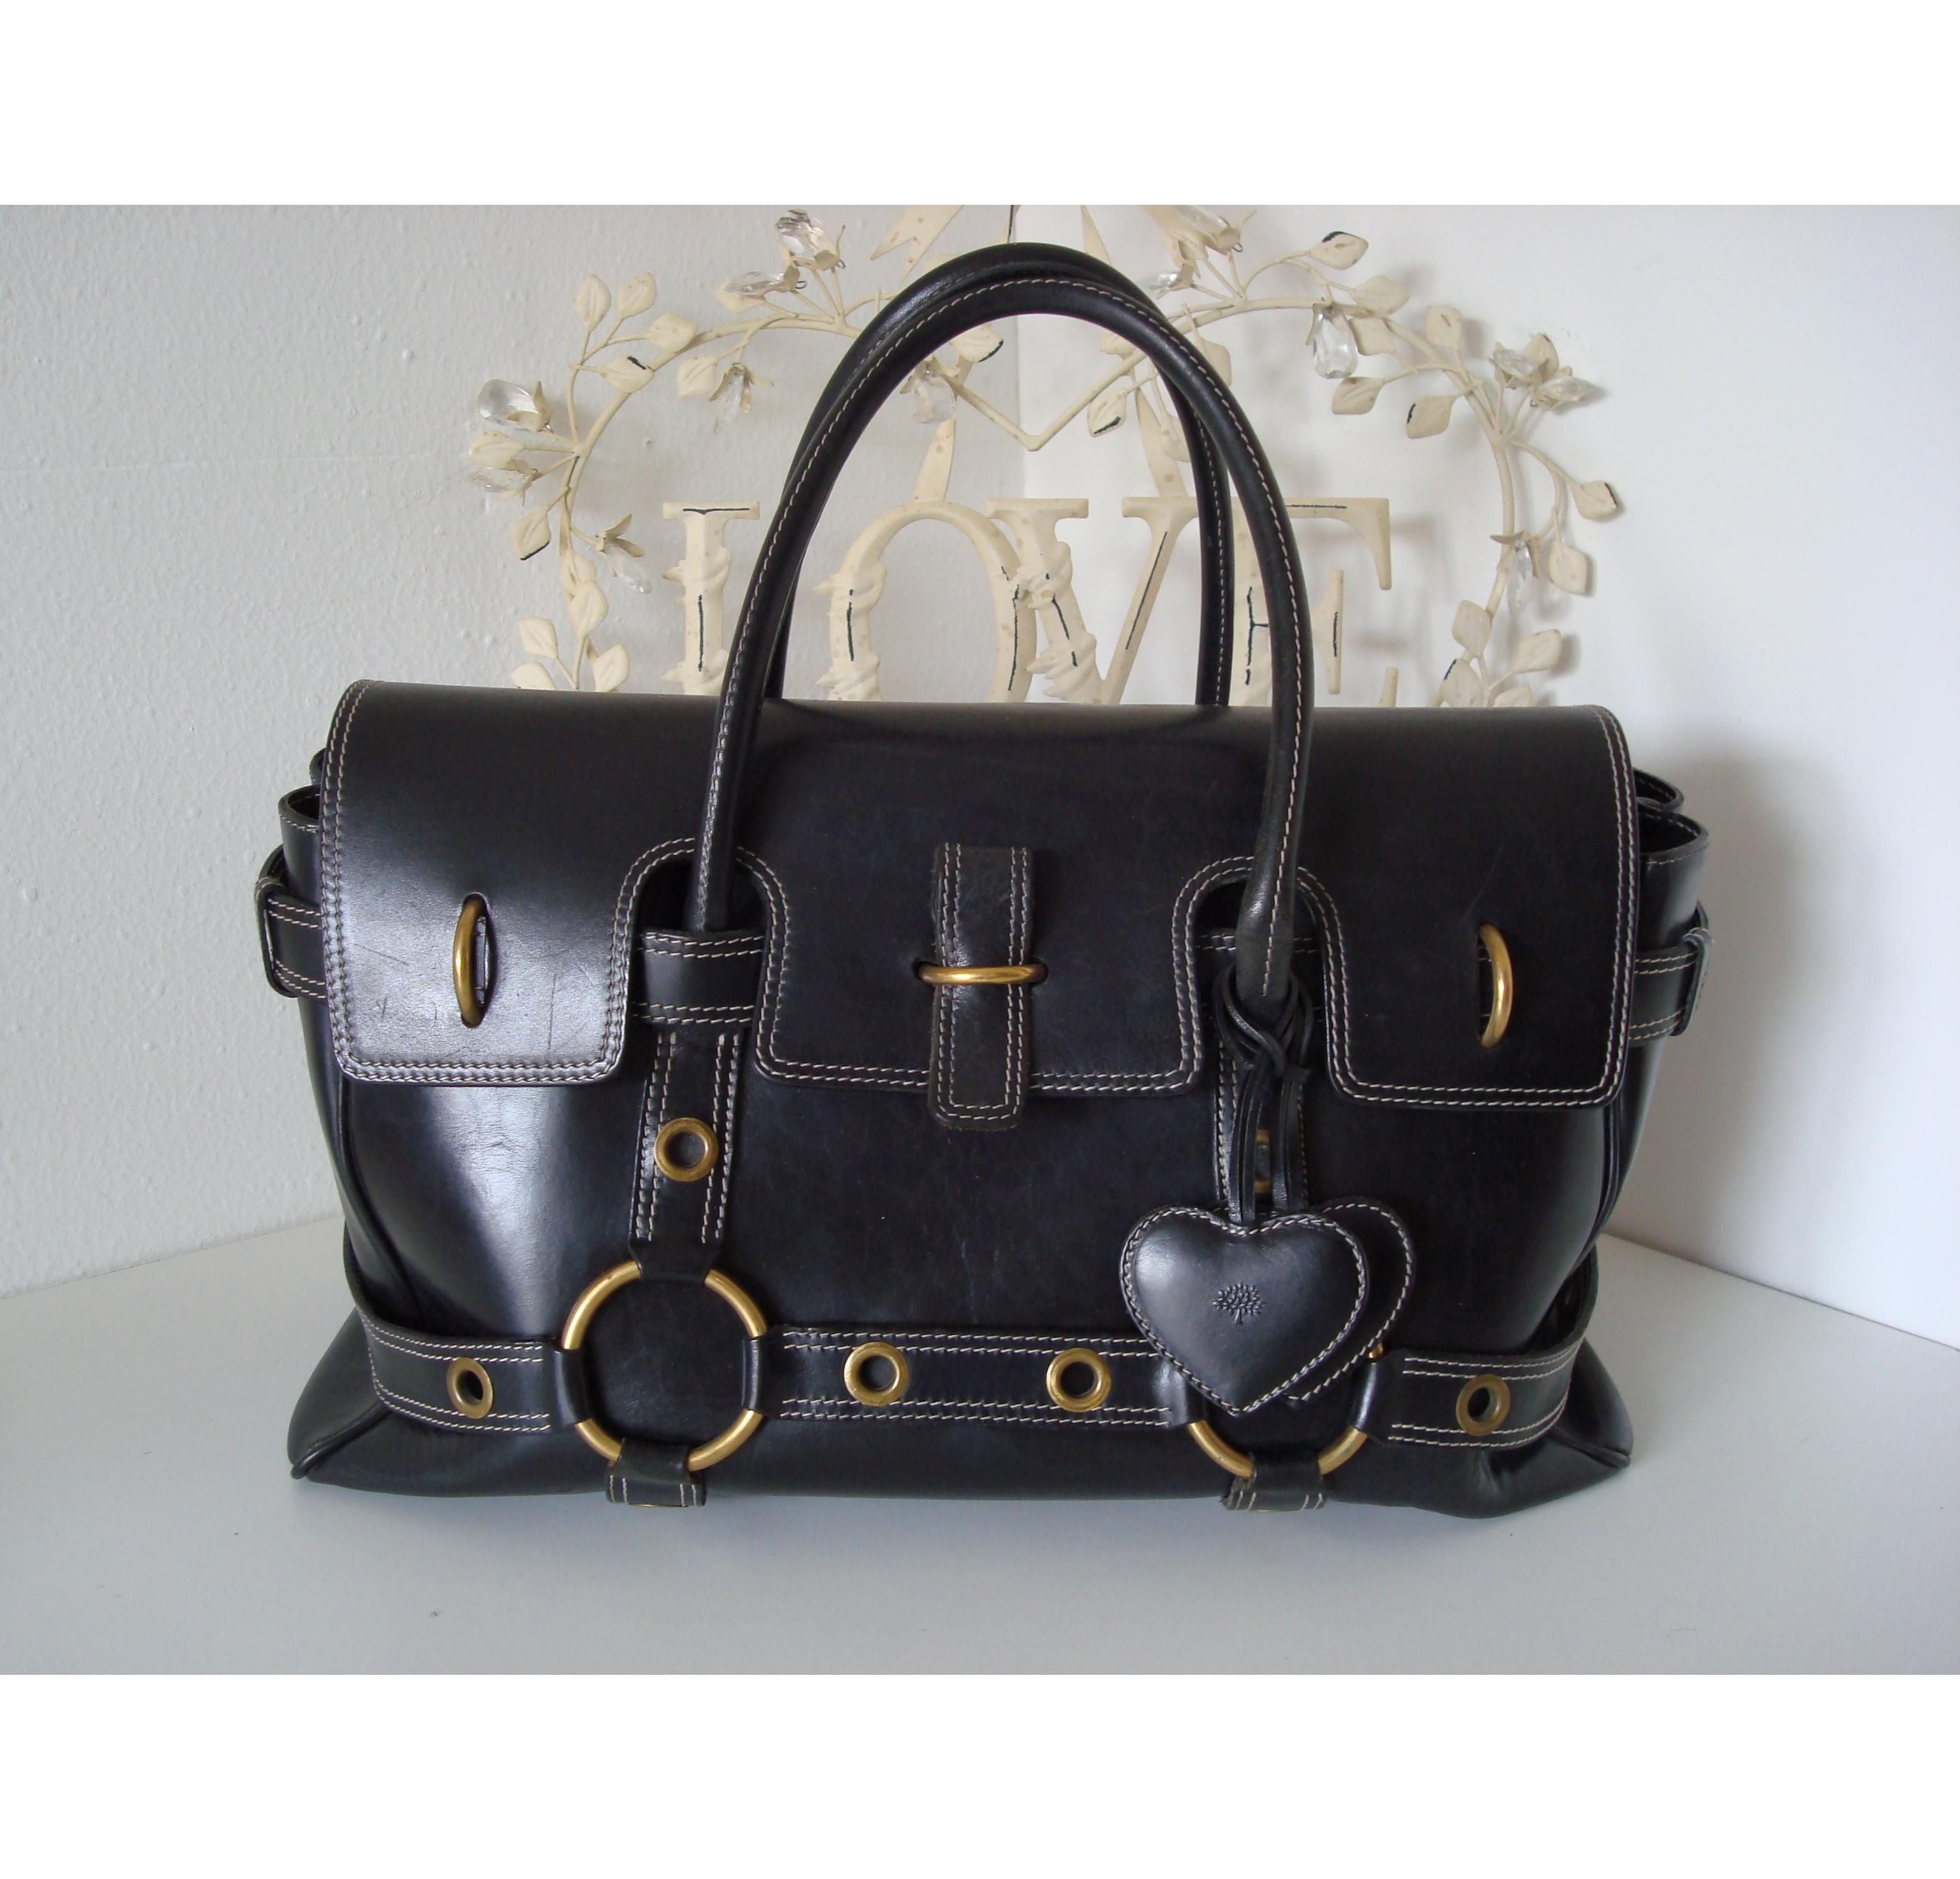 e782977ec306 Mulberry For Luella Limited Edition Giselle Bag